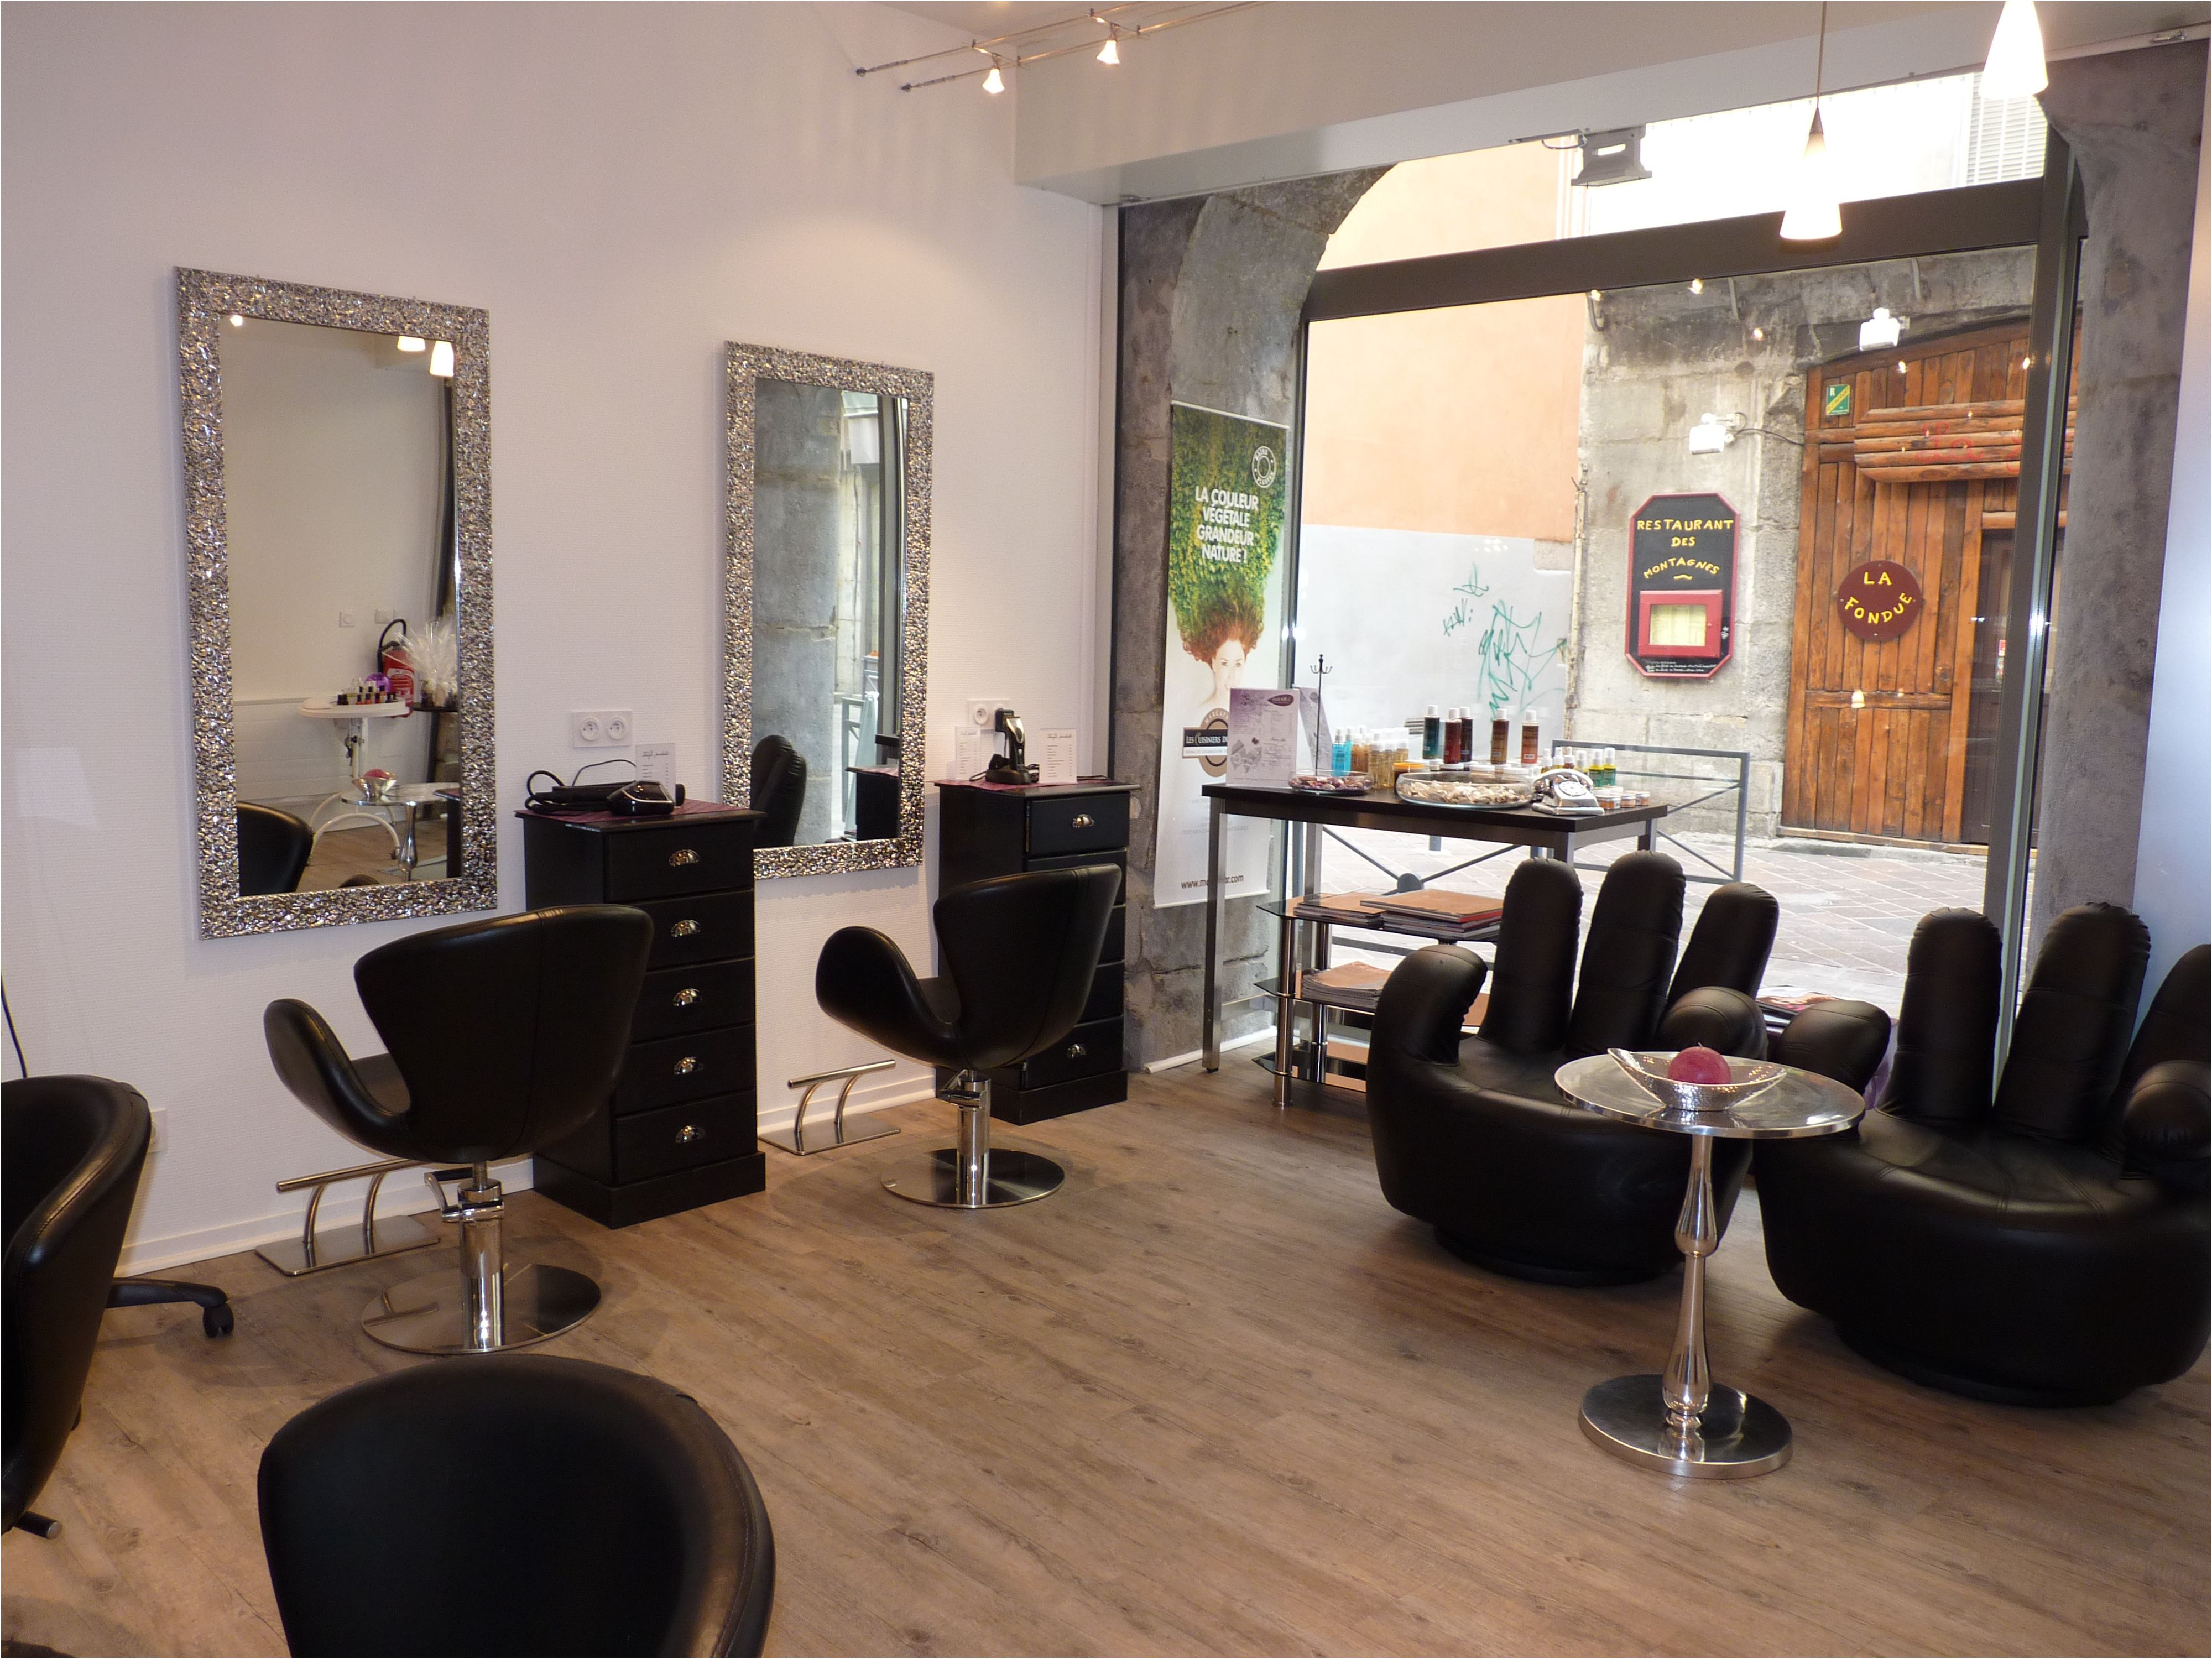 23 Salon De Coiffure Tresses Montreal Idees